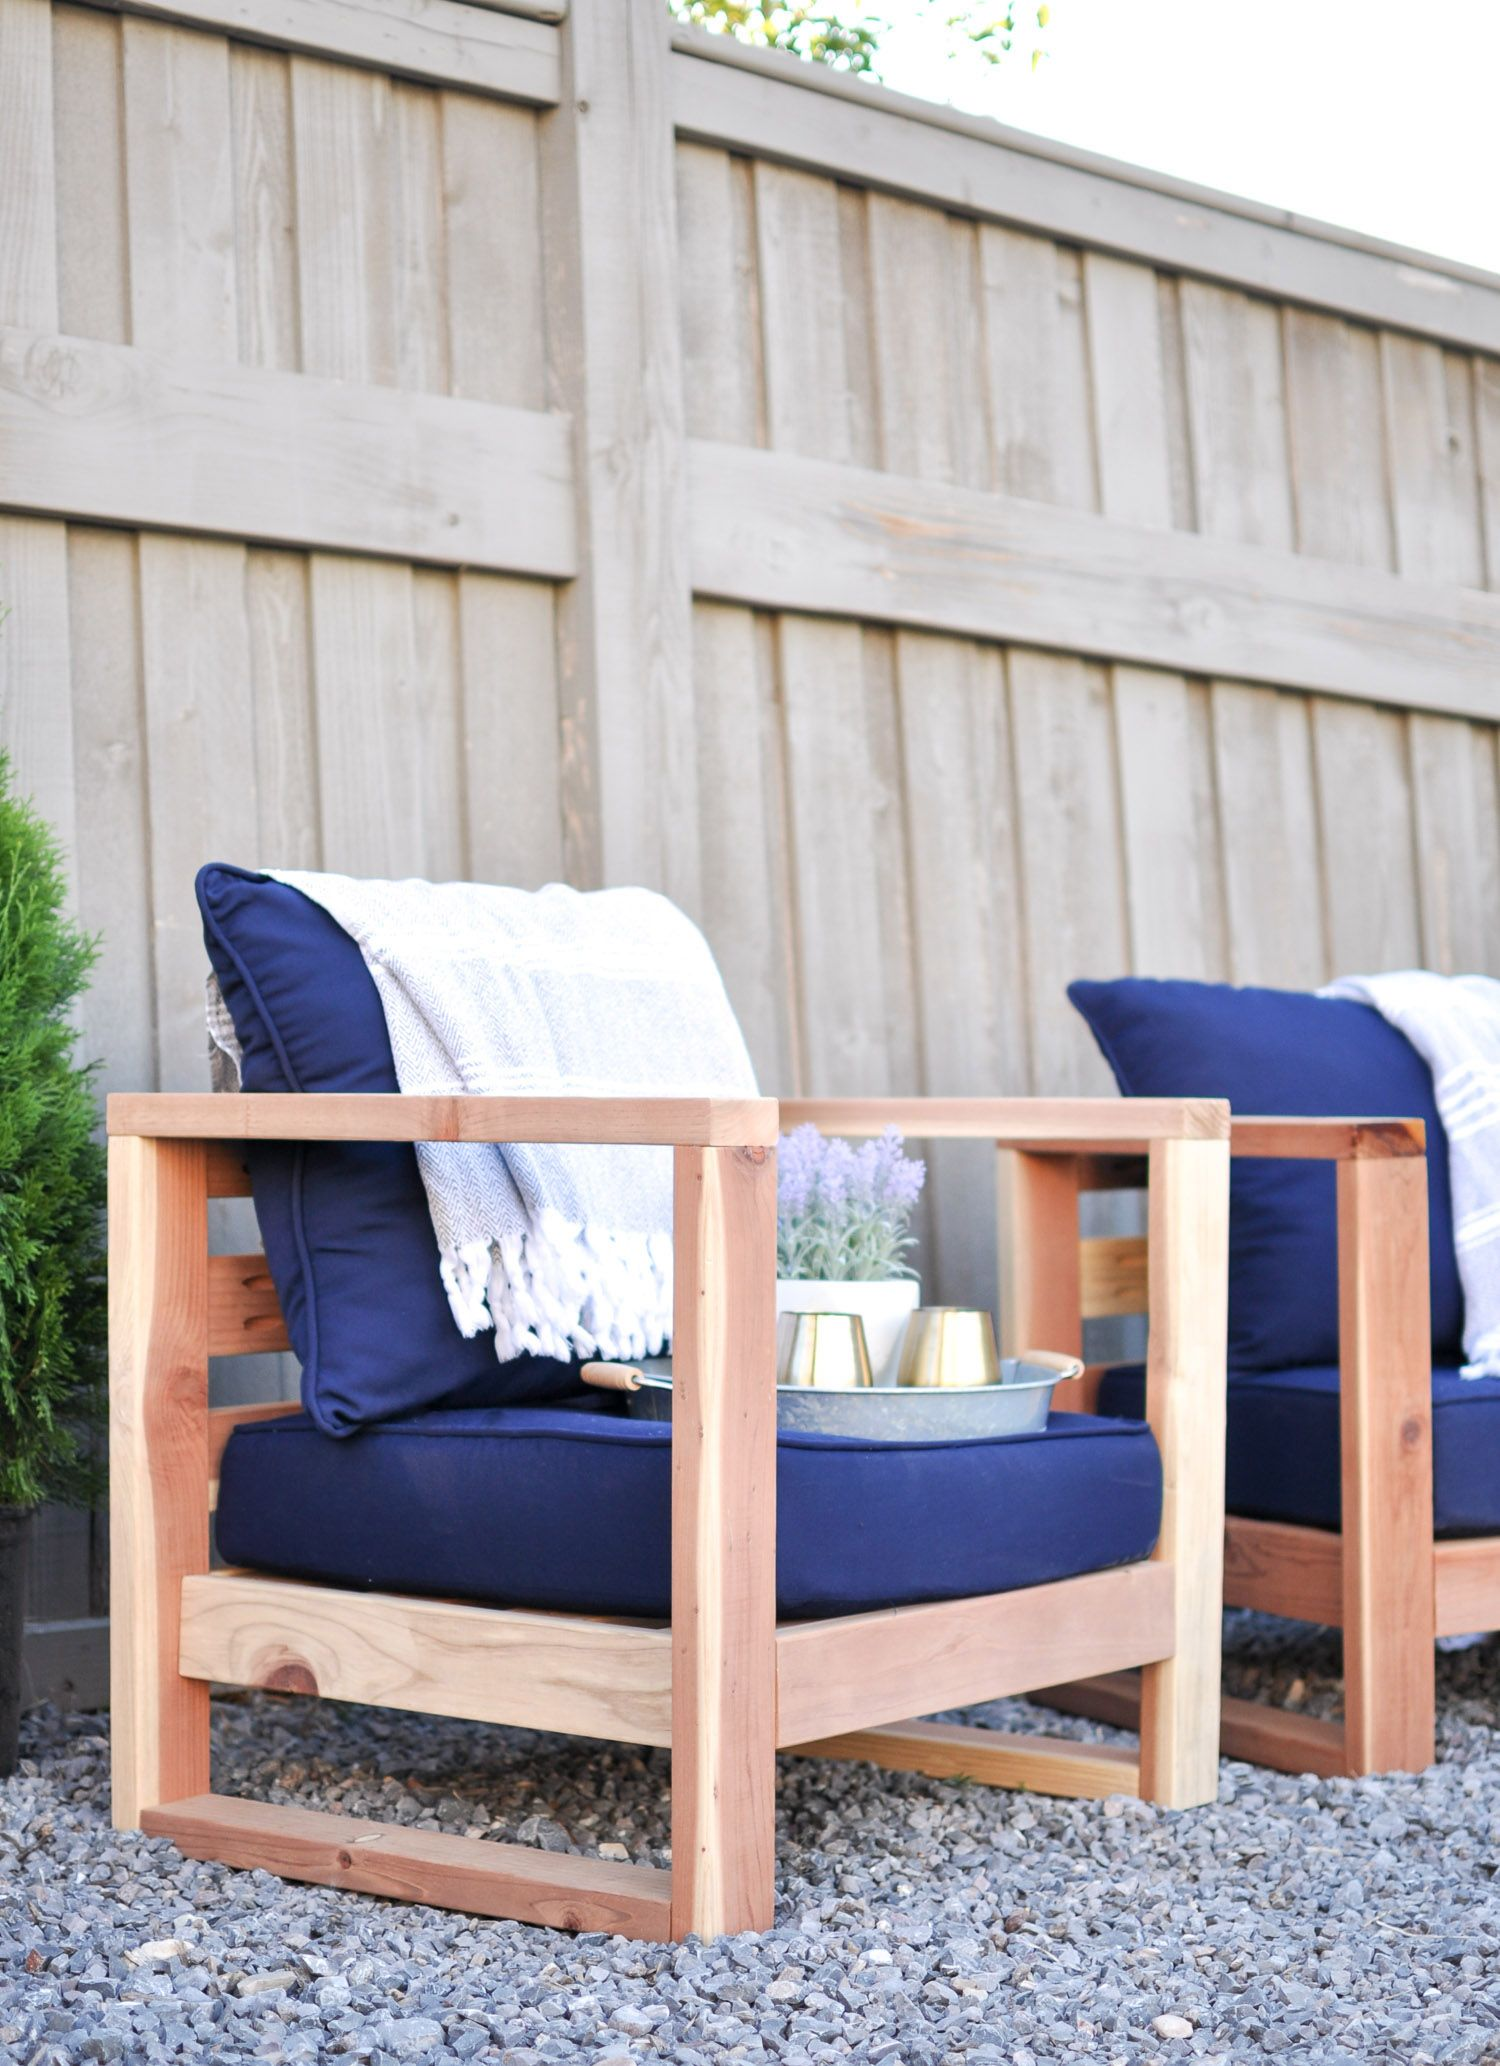 With these easy to follow free plans you can build this beautiful diy modern outdoor chair using only 2x4s and wood screws